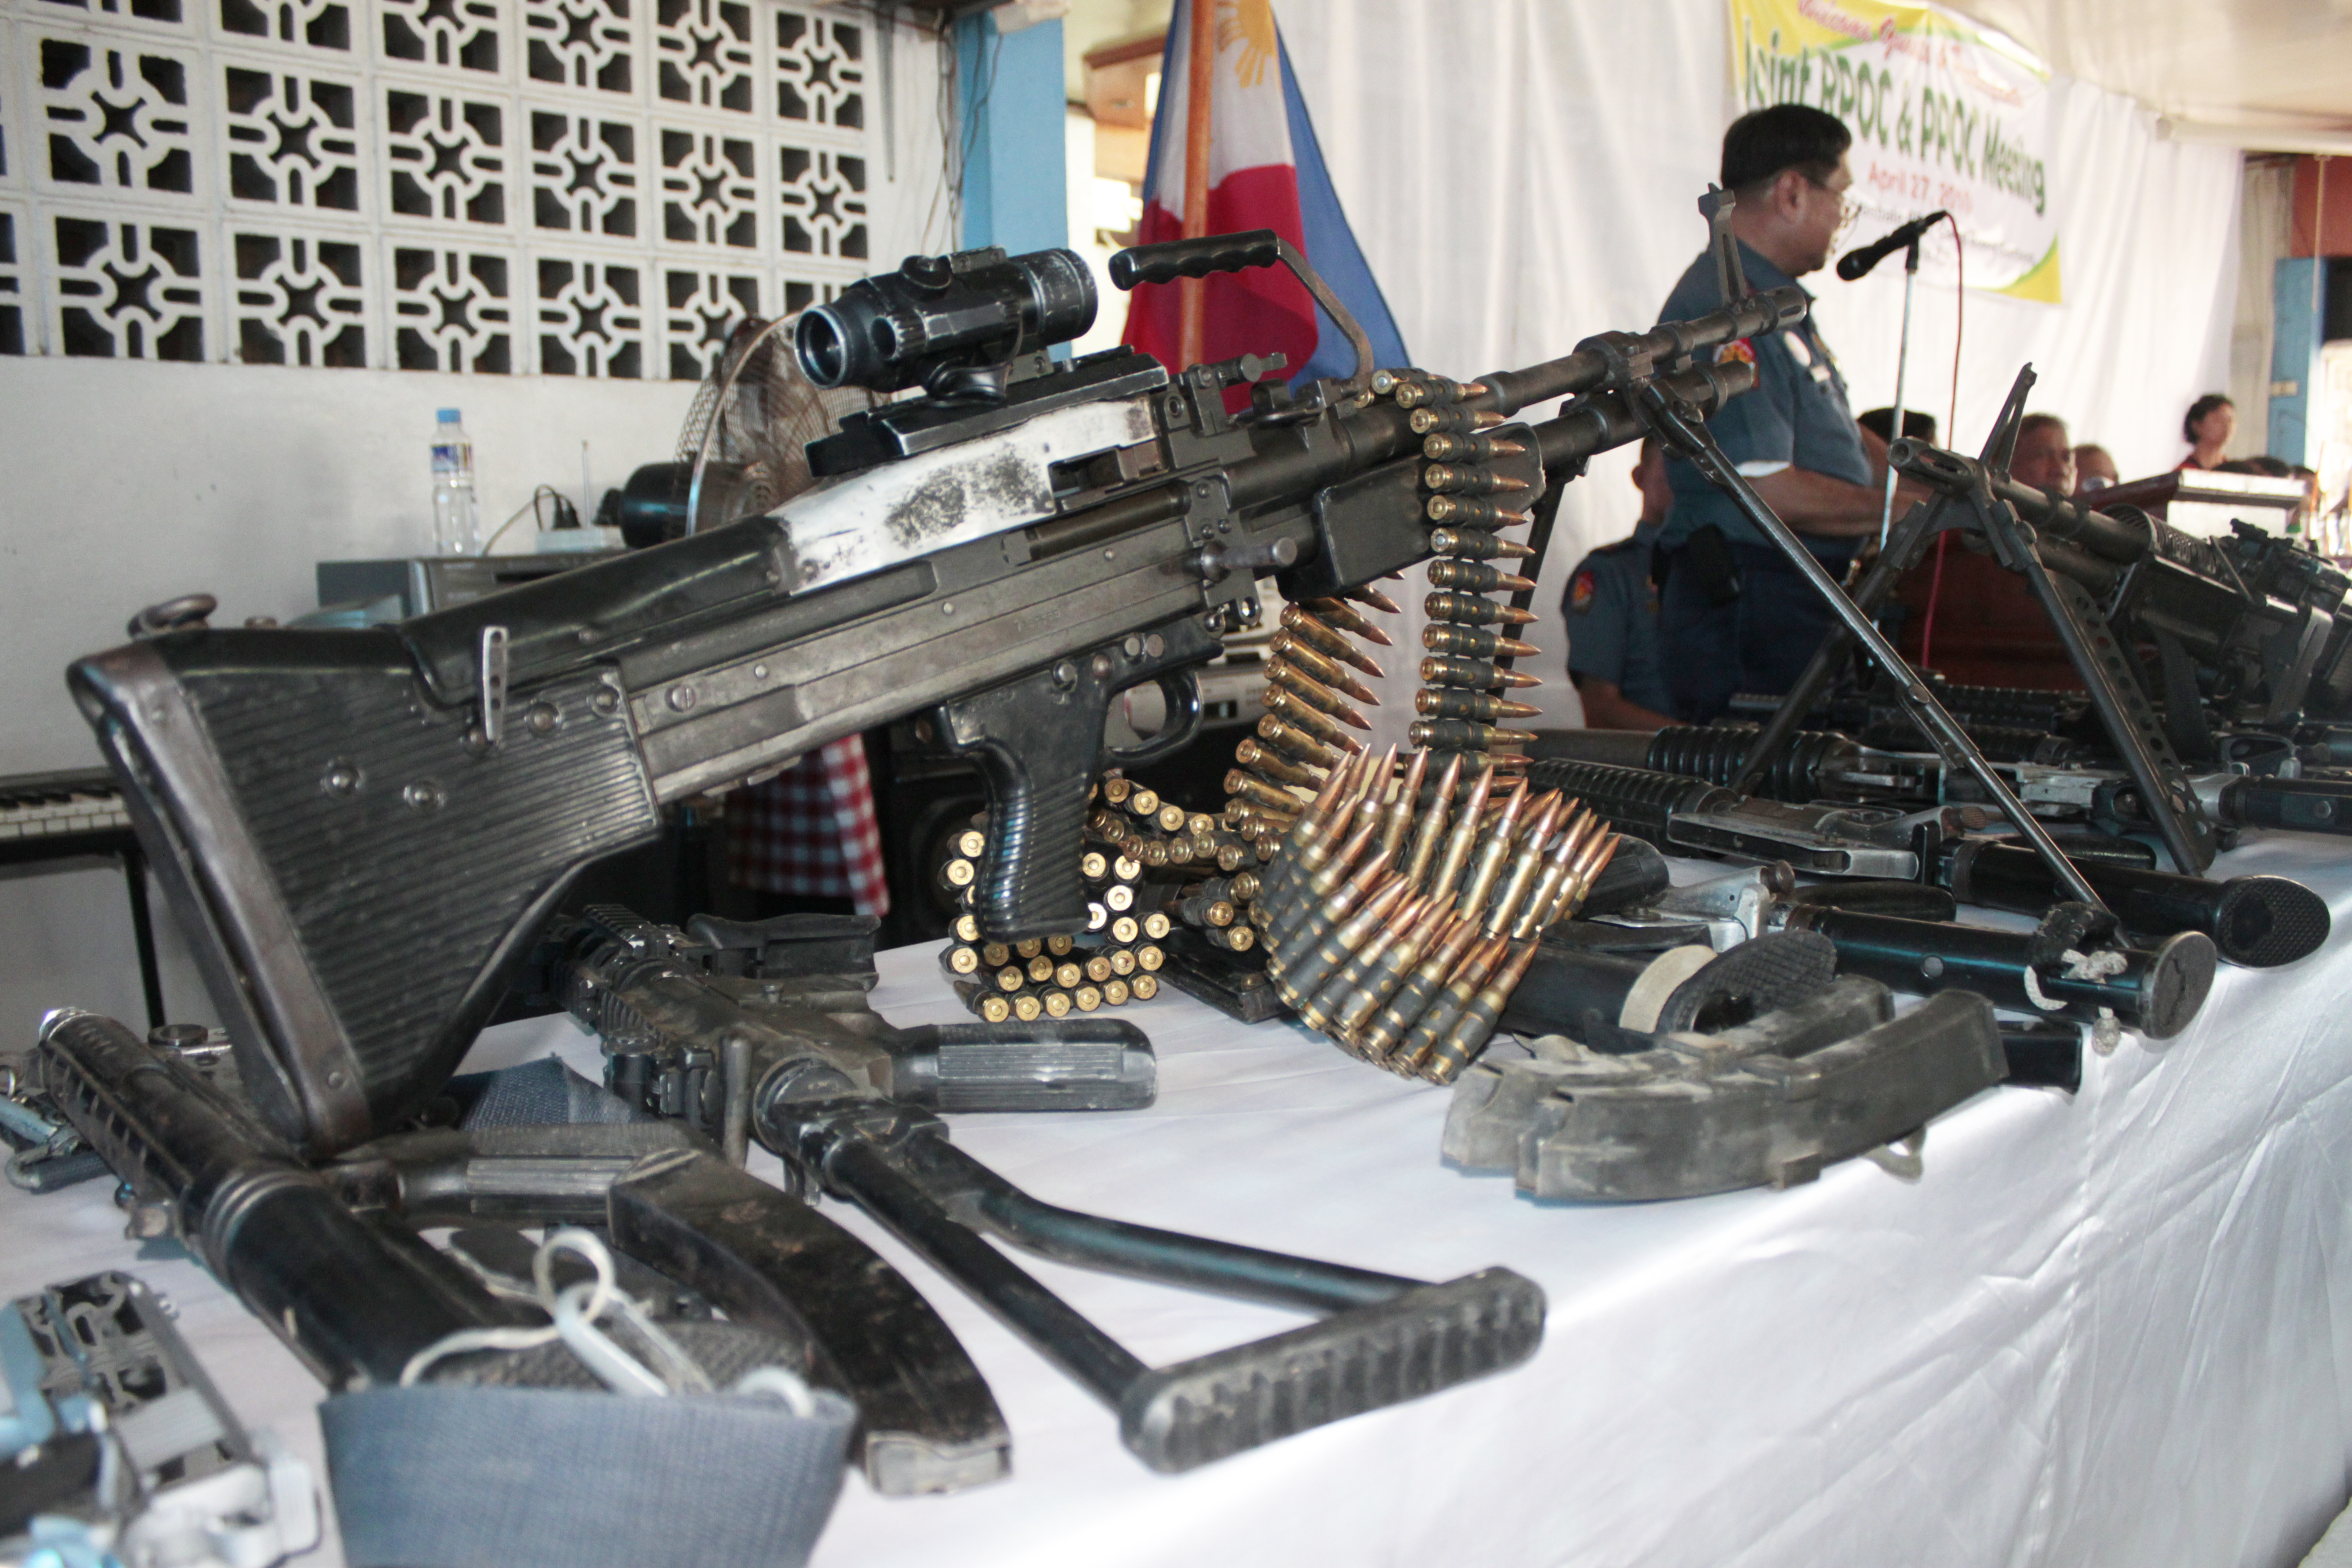 CONFISCATED. PNP Bicol presents illegal firearms turned over by the politicians in the past election in the island province of Masbate. Photo by Rhaydz Barcia/Rappler